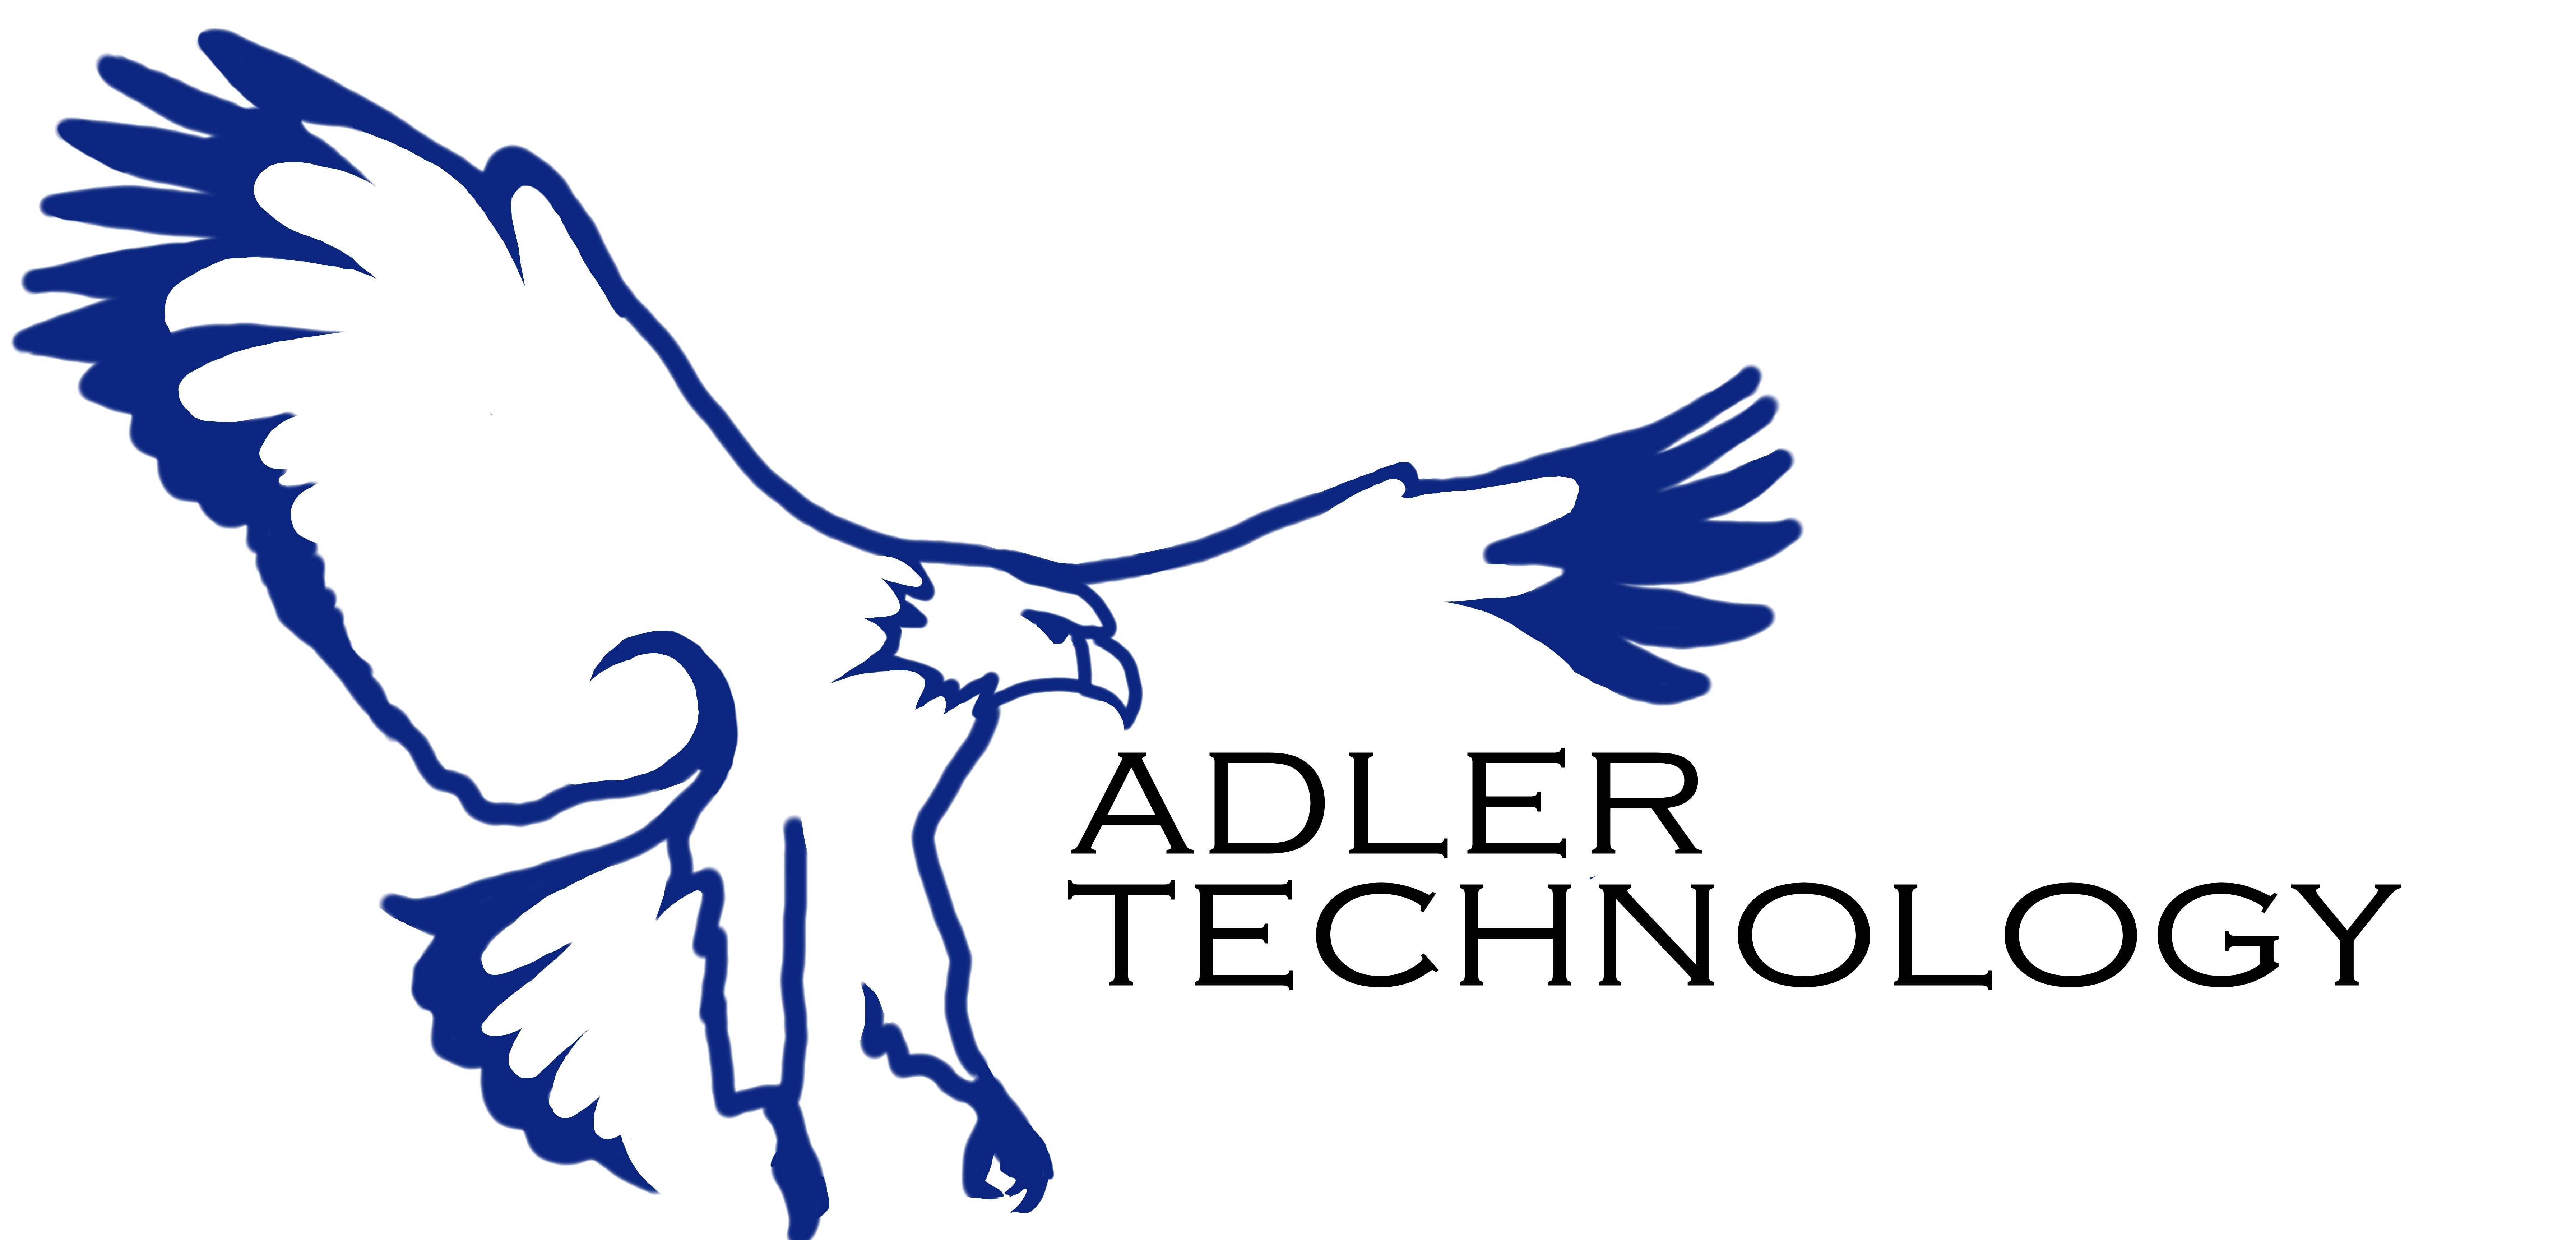 Adler Technology